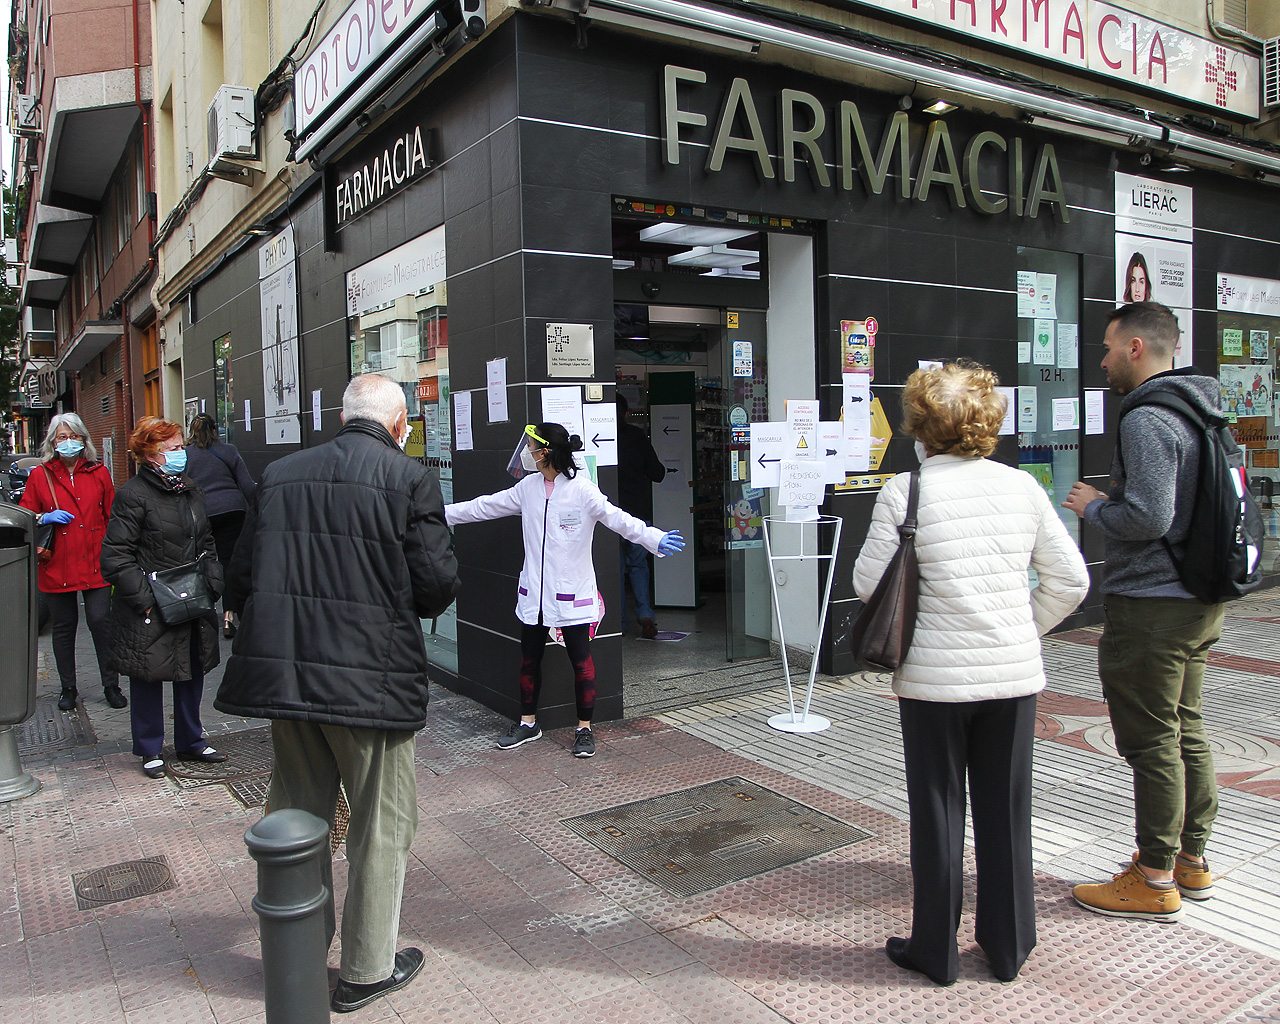 Reparto de mascarillas fpp2 en farmacias de Madrid. 11/05/2020.